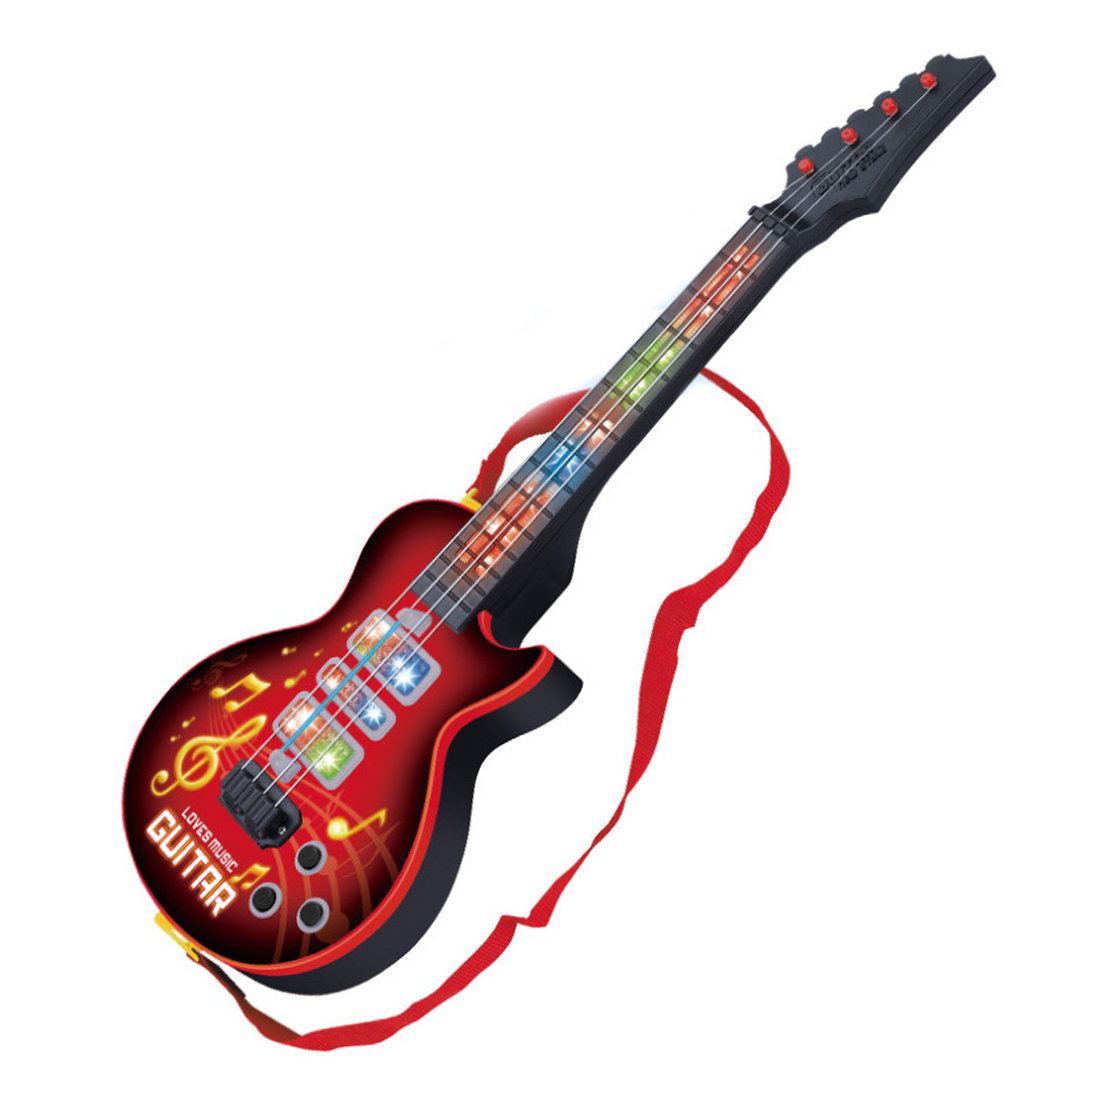 Hiqh Quality 4 Strings Music Electric Guitar Kids Musical Instruments Educational Toys For Children juguetes As New Year Gift(China (Mainland))